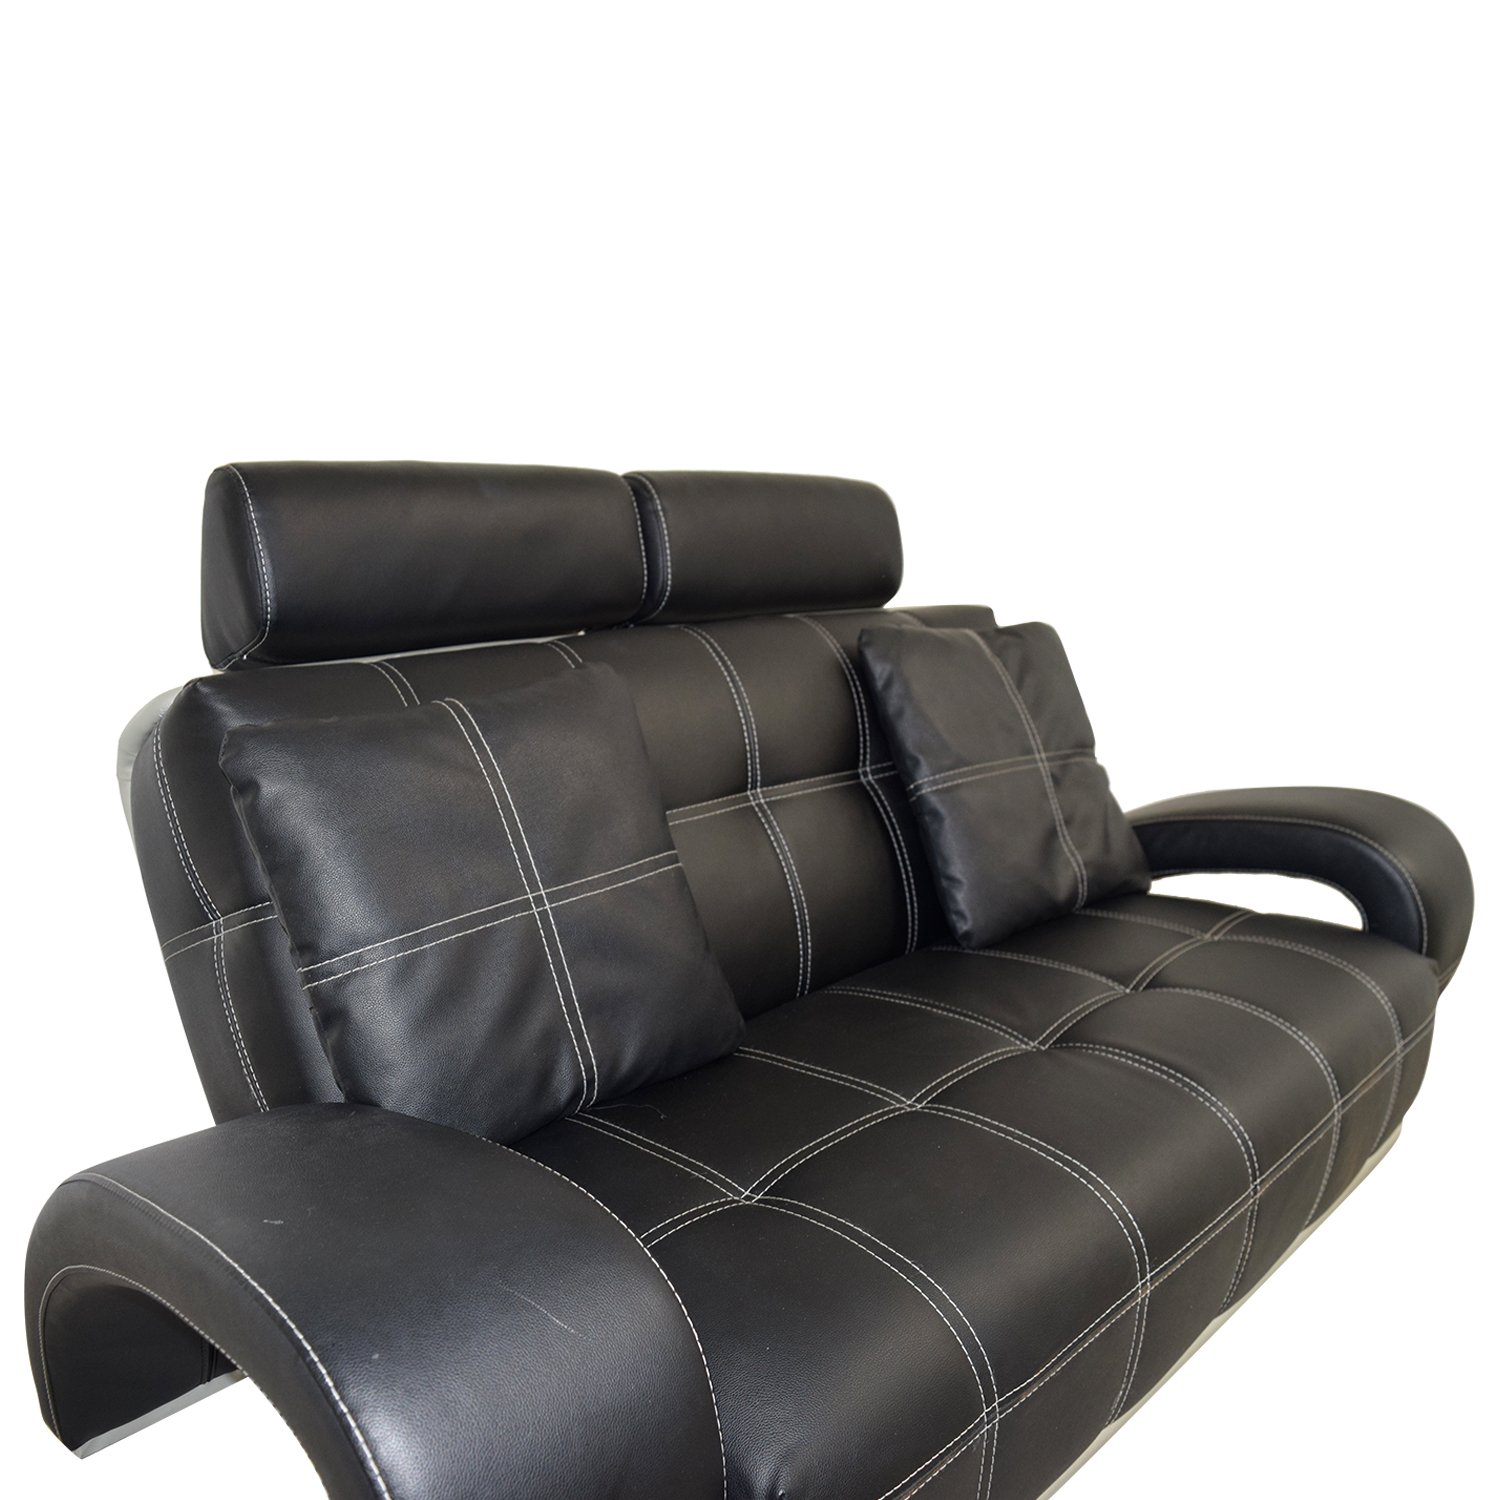 56 off black leather love seat with pillows sofas. Black Bedroom Furniture Sets. Home Design Ideas